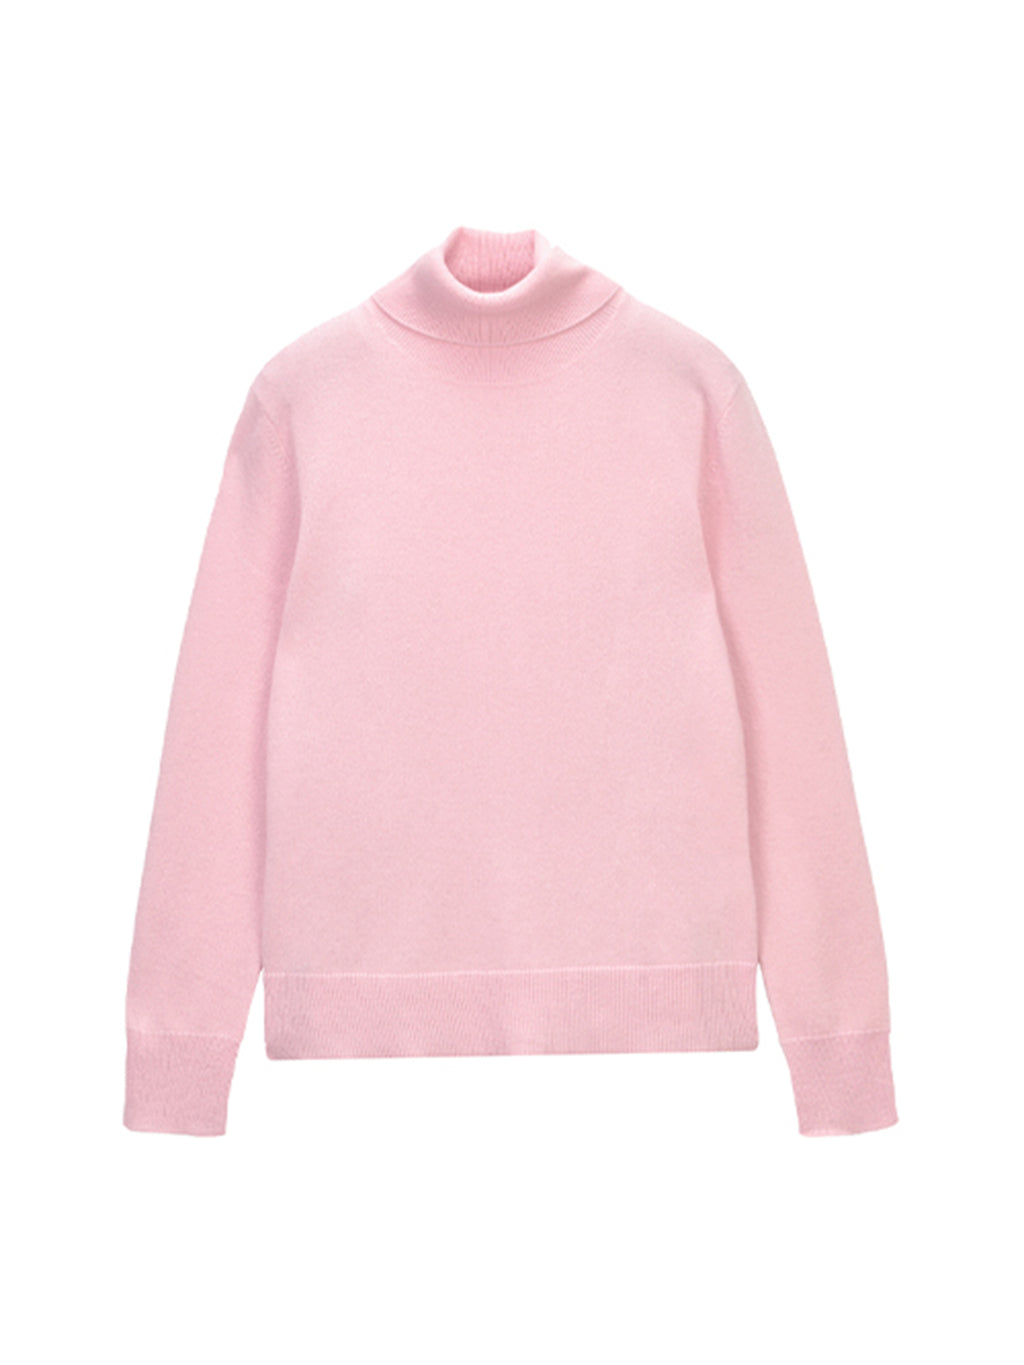 Turtleneck Sweater_Pink Blush